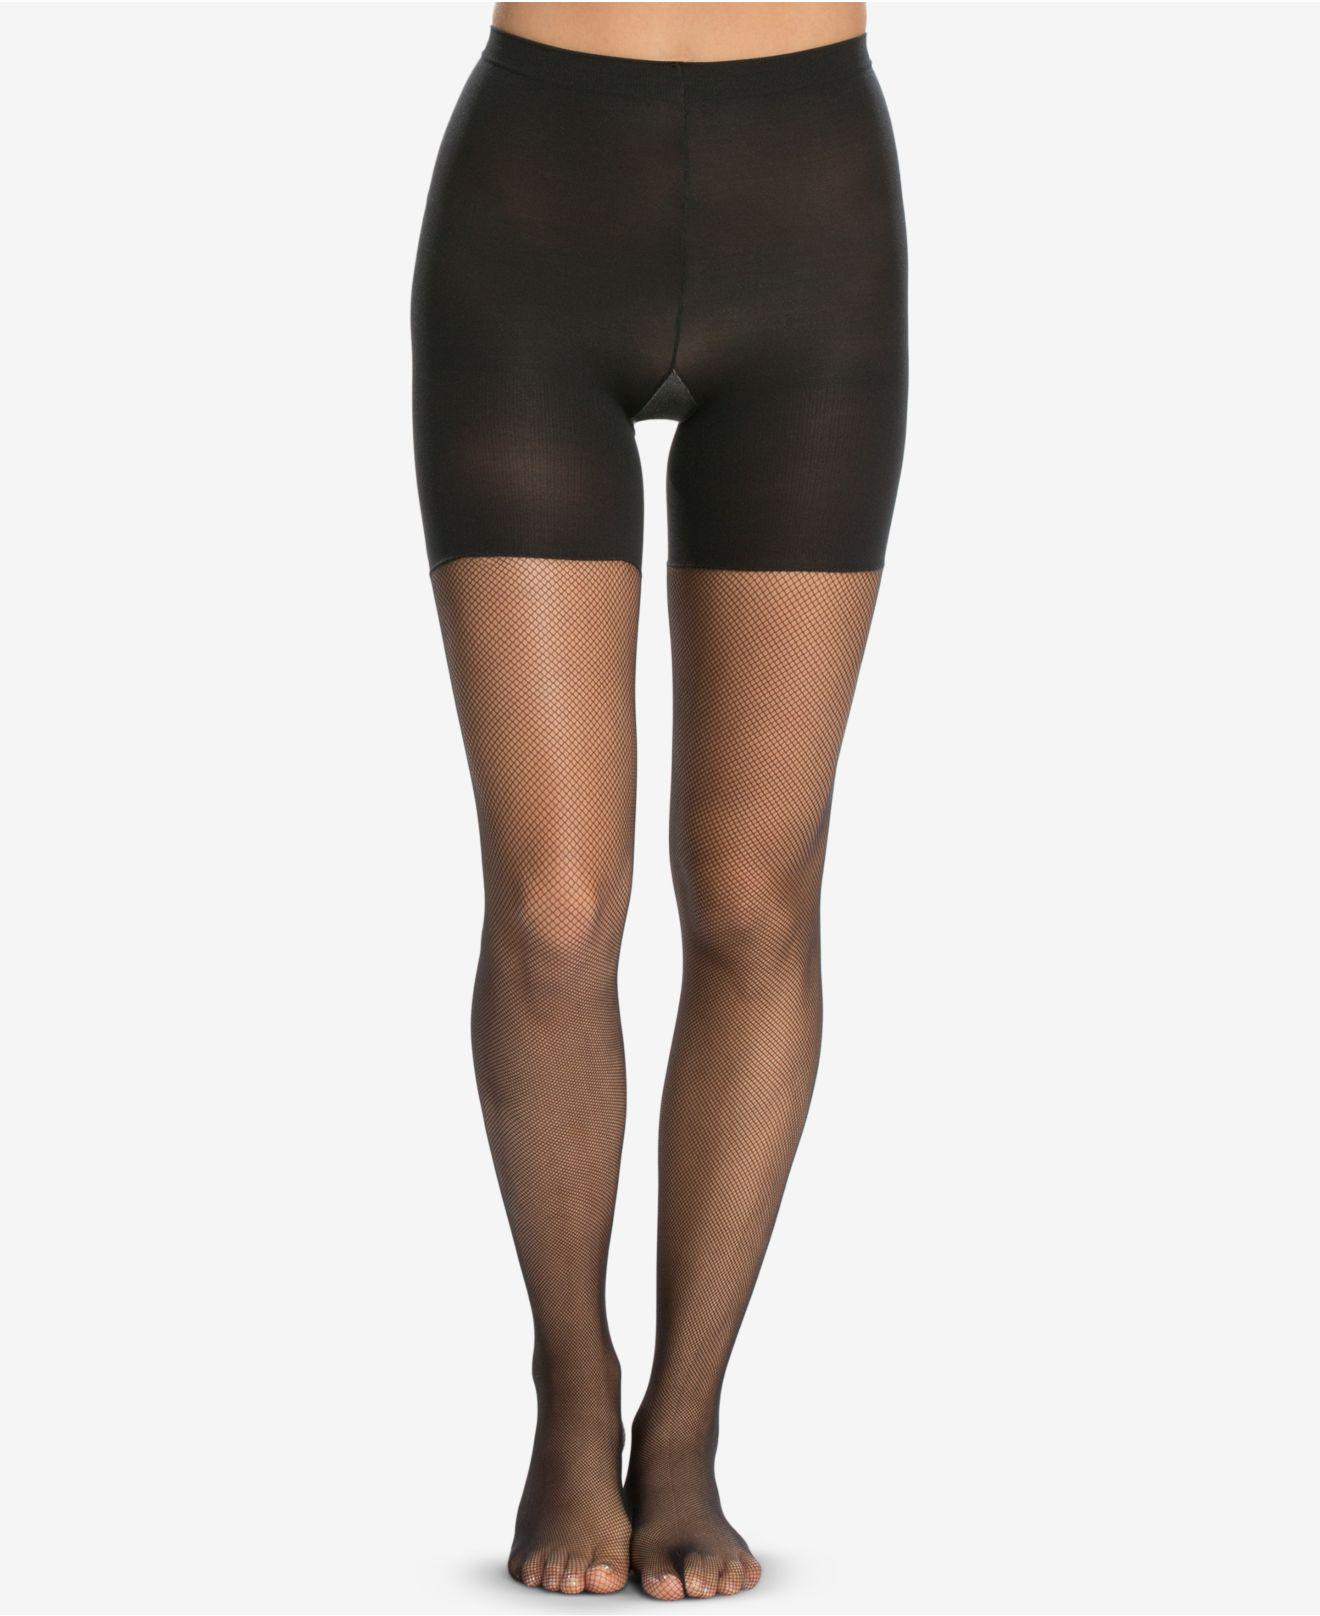 8e1589c731644 Lyst - Spanx ® Micro-fishnet Mid-thigh Shaping Tights in Black